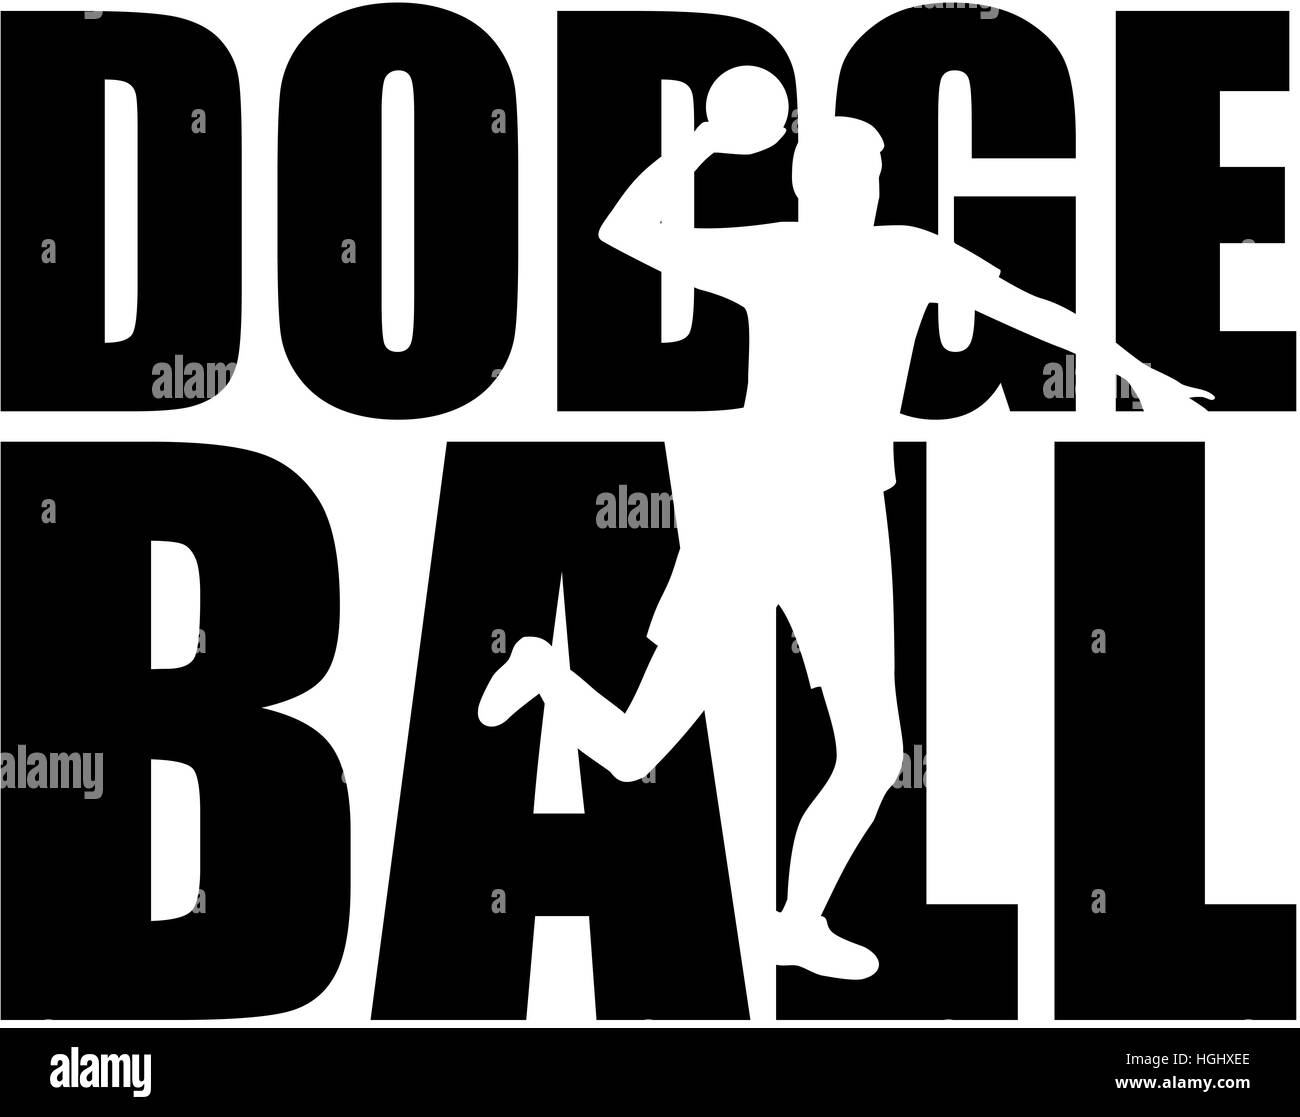 dodgeball word with player silhouette stock photo: 130701046 - alamy